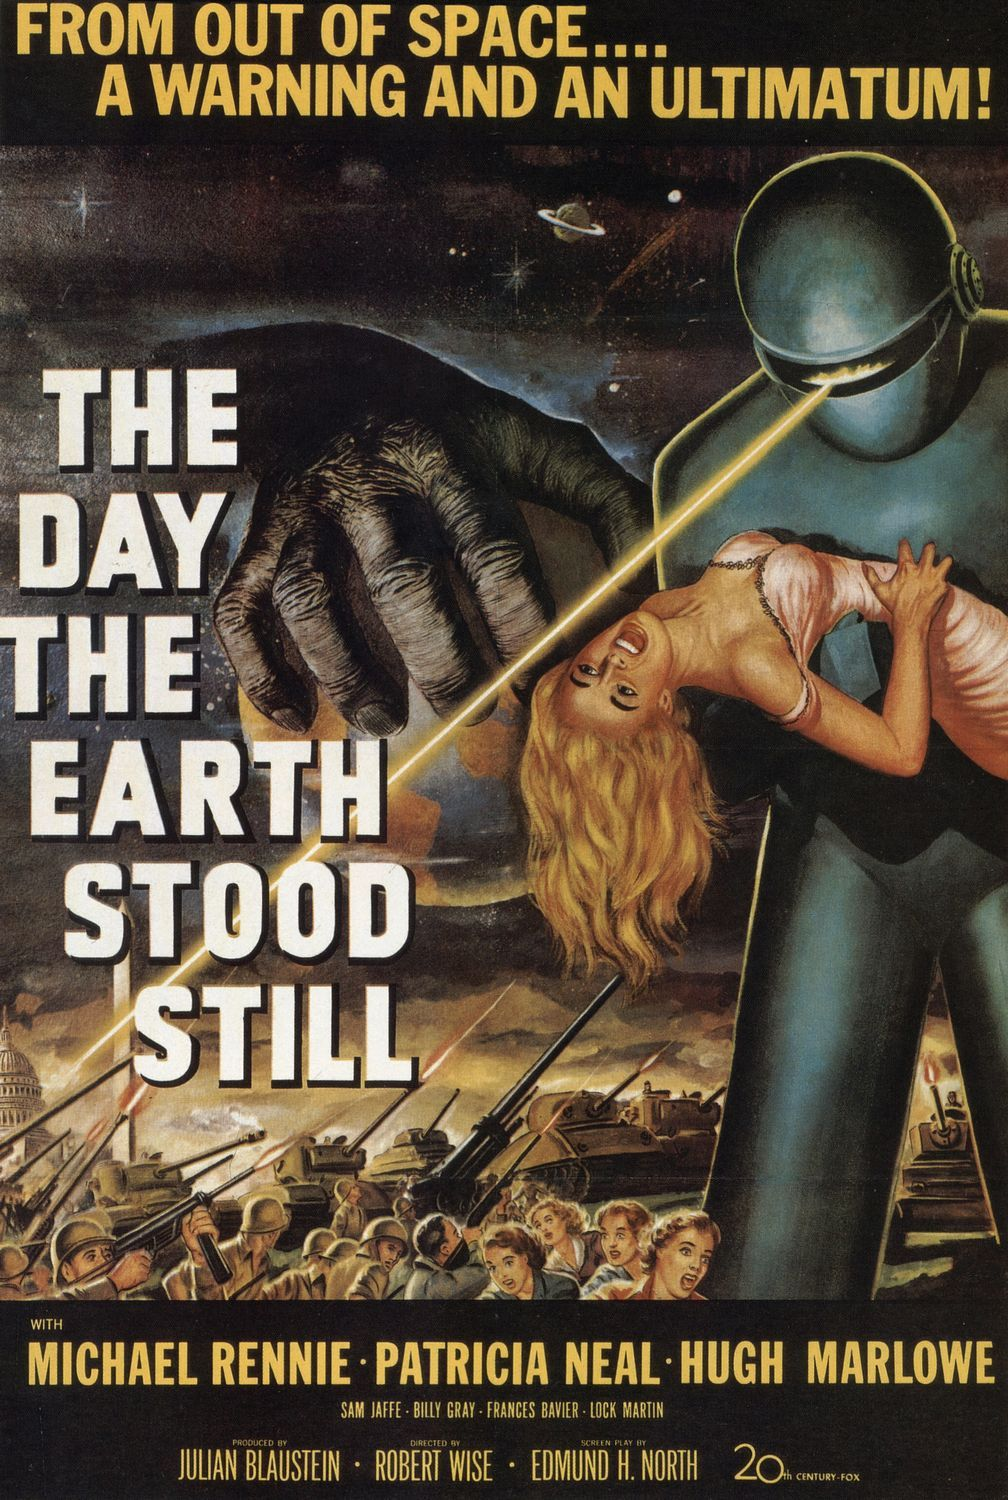 The Day The Earth Stood Still 1951 Movie Poster Science Fiction Movie Posters Science Fiction Movies Horror Movie Posters